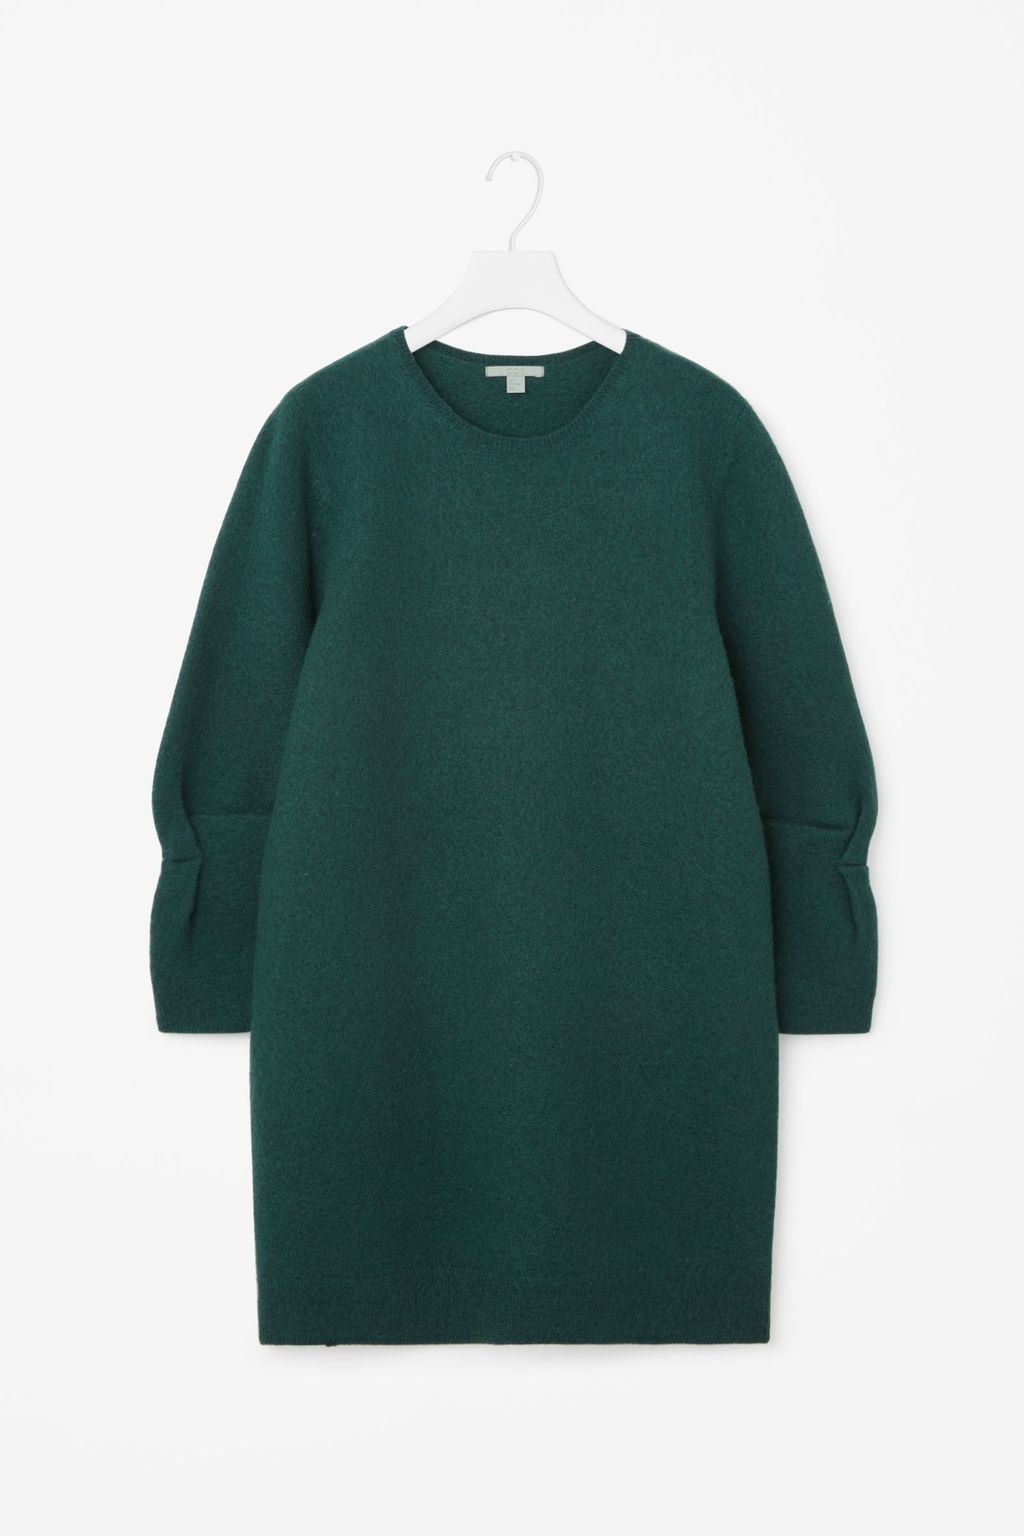 Dress With Twisted Sleeves - style: shift; length: mini; pattern: plain; sleeve style: balloon; predominant colour: dark green; occasions: casual, creative work; fit: straight cut; fibres: wool - 100%; neckline: crew; sleeve length: long sleeve; pattern type: fabric; texture group: woven bulky/heavy; season: a/w 2016; wardrobe: highlight; trends: statement sleeves